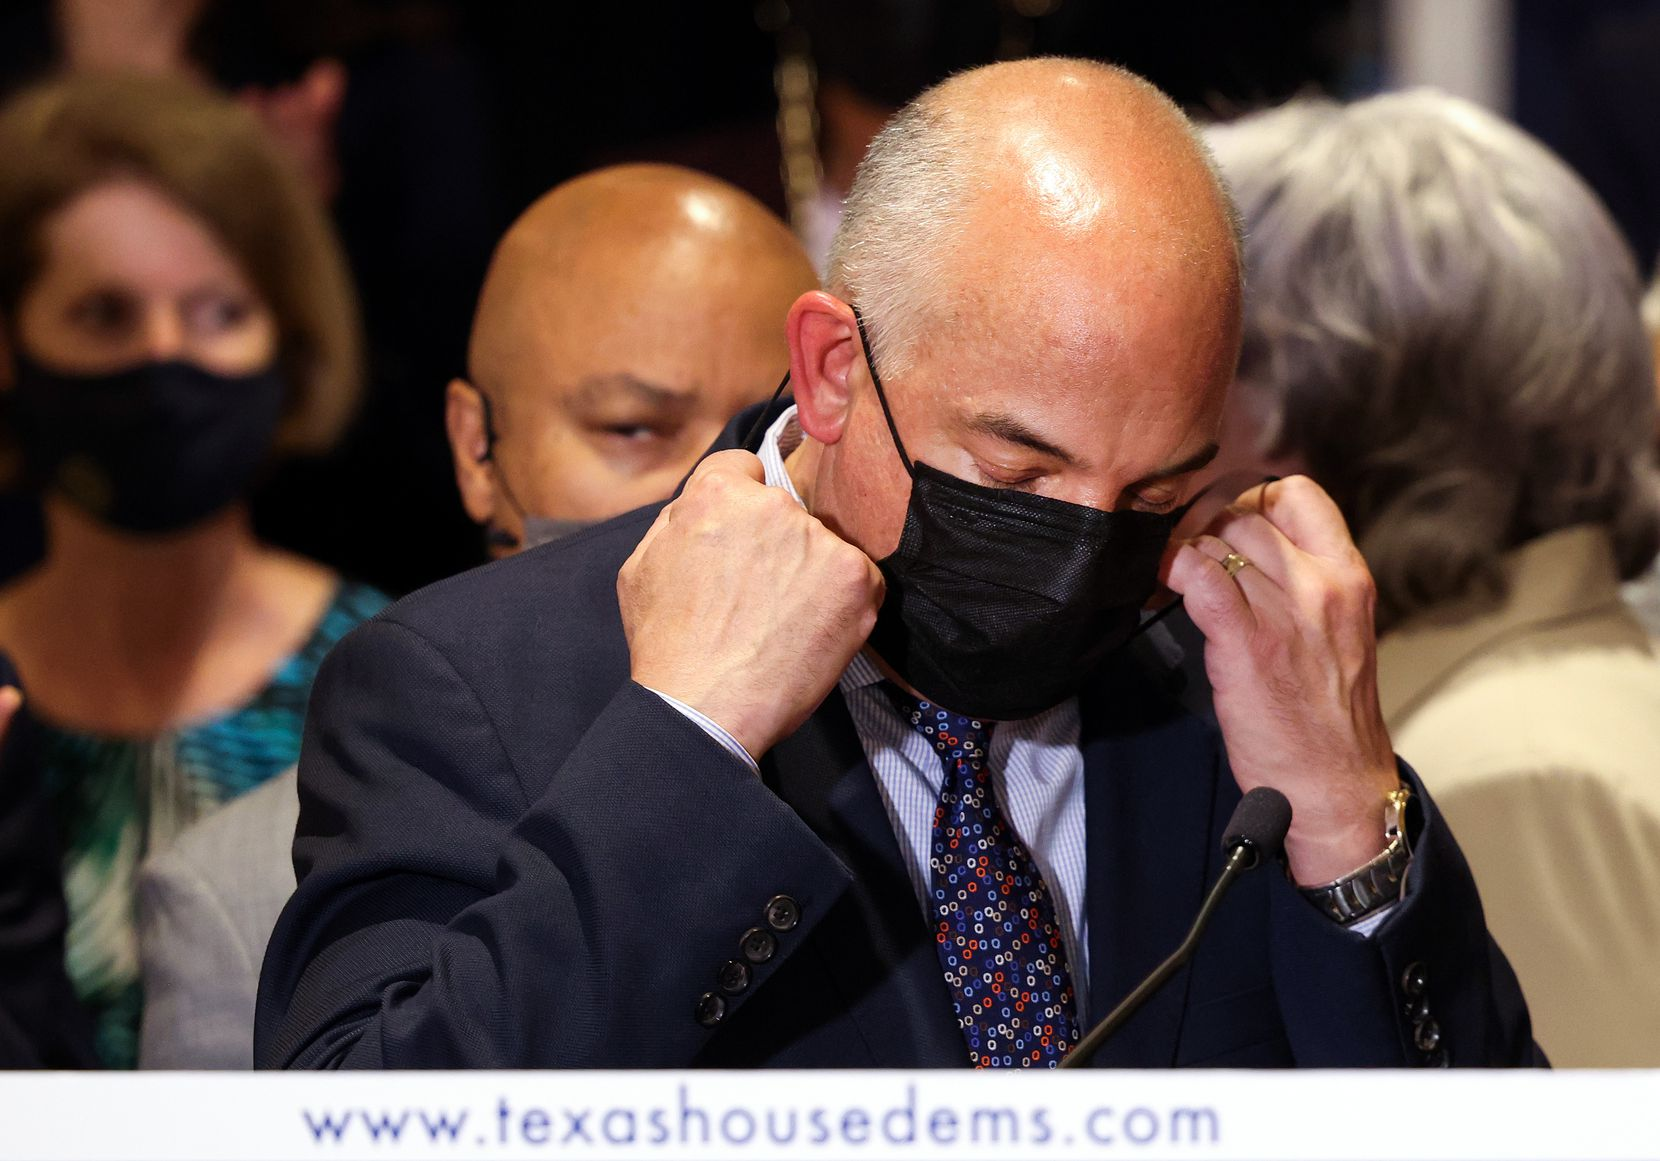 Texas House Democratic Caucus Chair Rep. Chris Turner (D-101), joined by fellow Democratic Texas state representatives, puts on a mask after speaking at a press conference on Texas Gov. Greg Abbott and the group's meetings with federal lawmakers on voting rights, on July 20, 2021 in Washington, DC. Members of the Texas House Democratic Caucus continue to lobby for voting rights reform in Washington, DC after leaving Texas to block a voting restrictions bill by denying a Republican quorum.